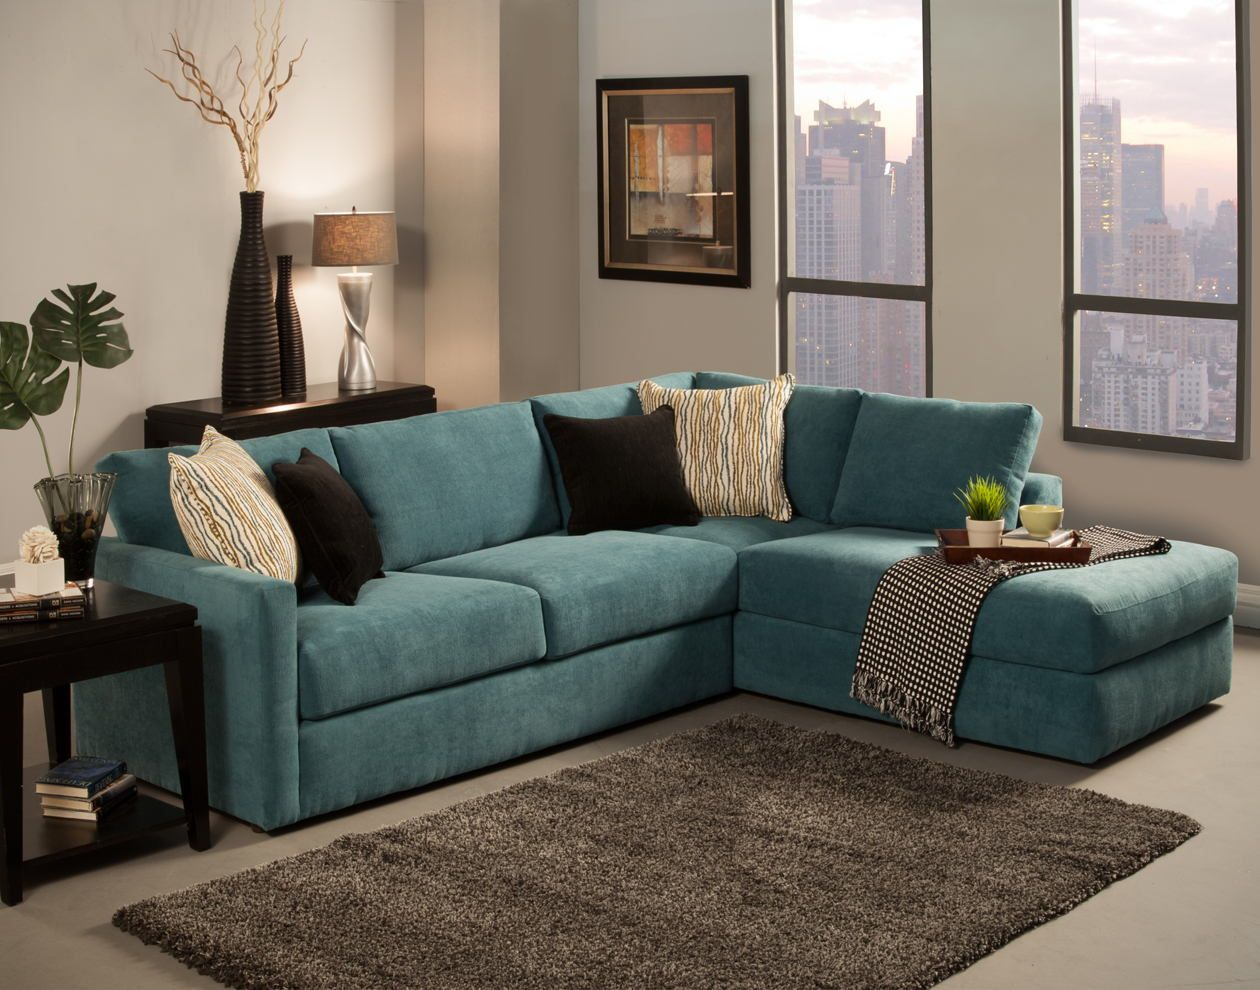 Awesome Wrap Around Sofa Amazing 92 Contemporary Inspiration With Http Sofascouch 47122